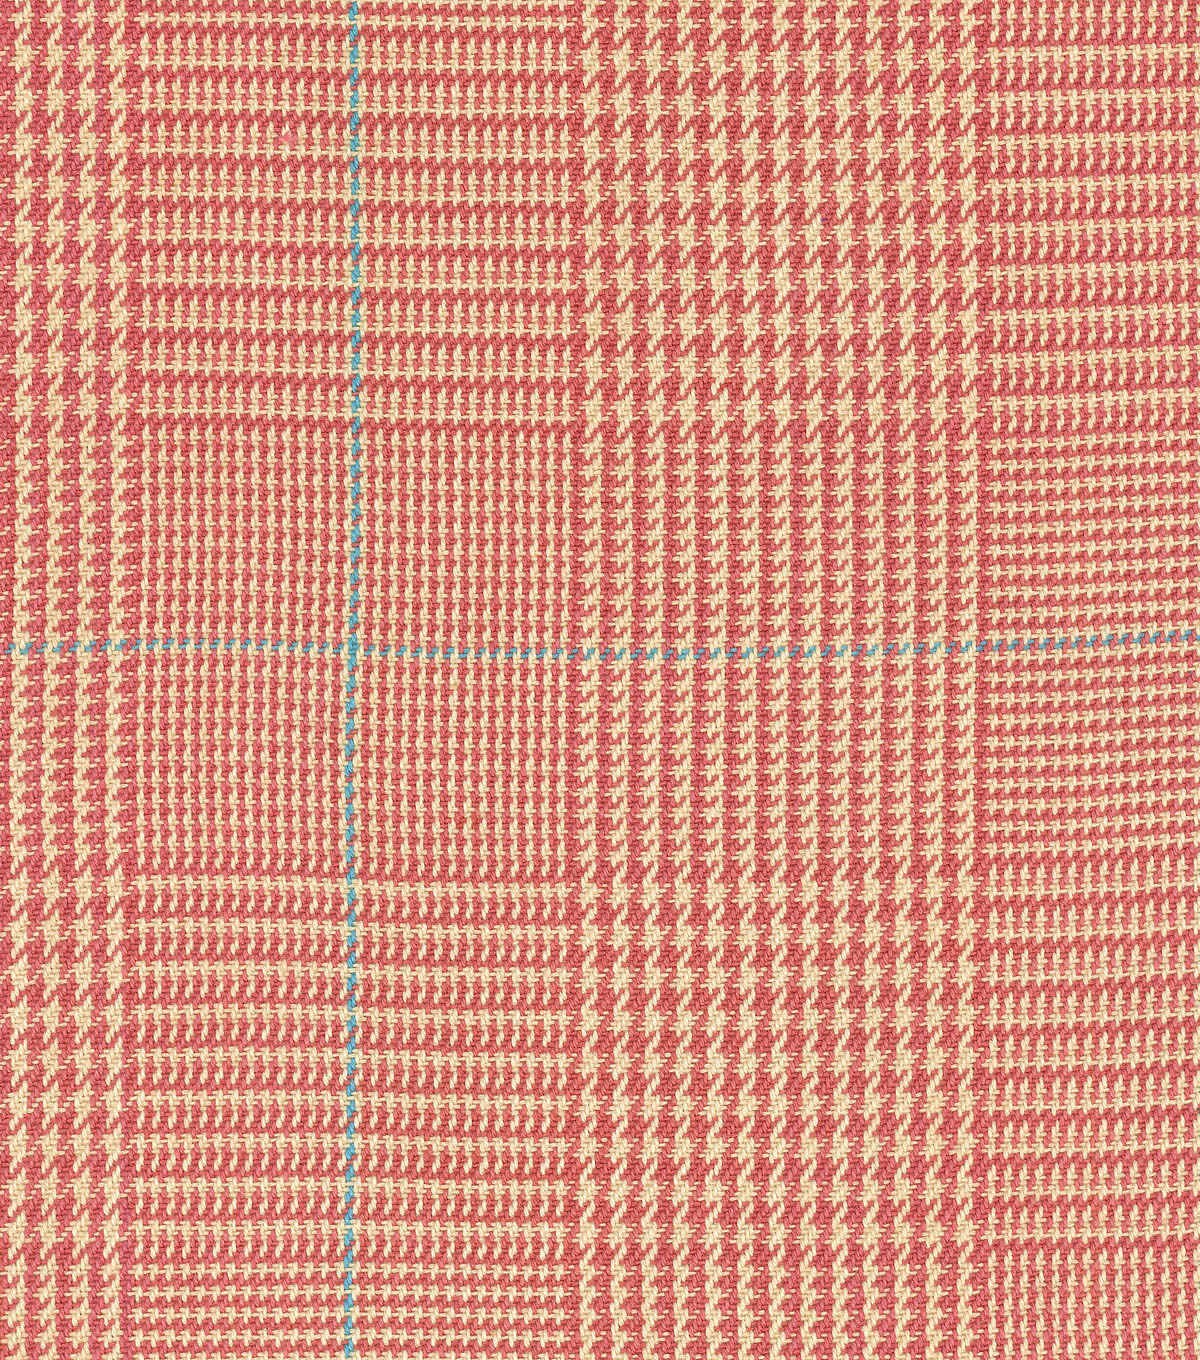 "Waverly Upholstery Fabric 54""-Grantham Plaid/Rosehip"